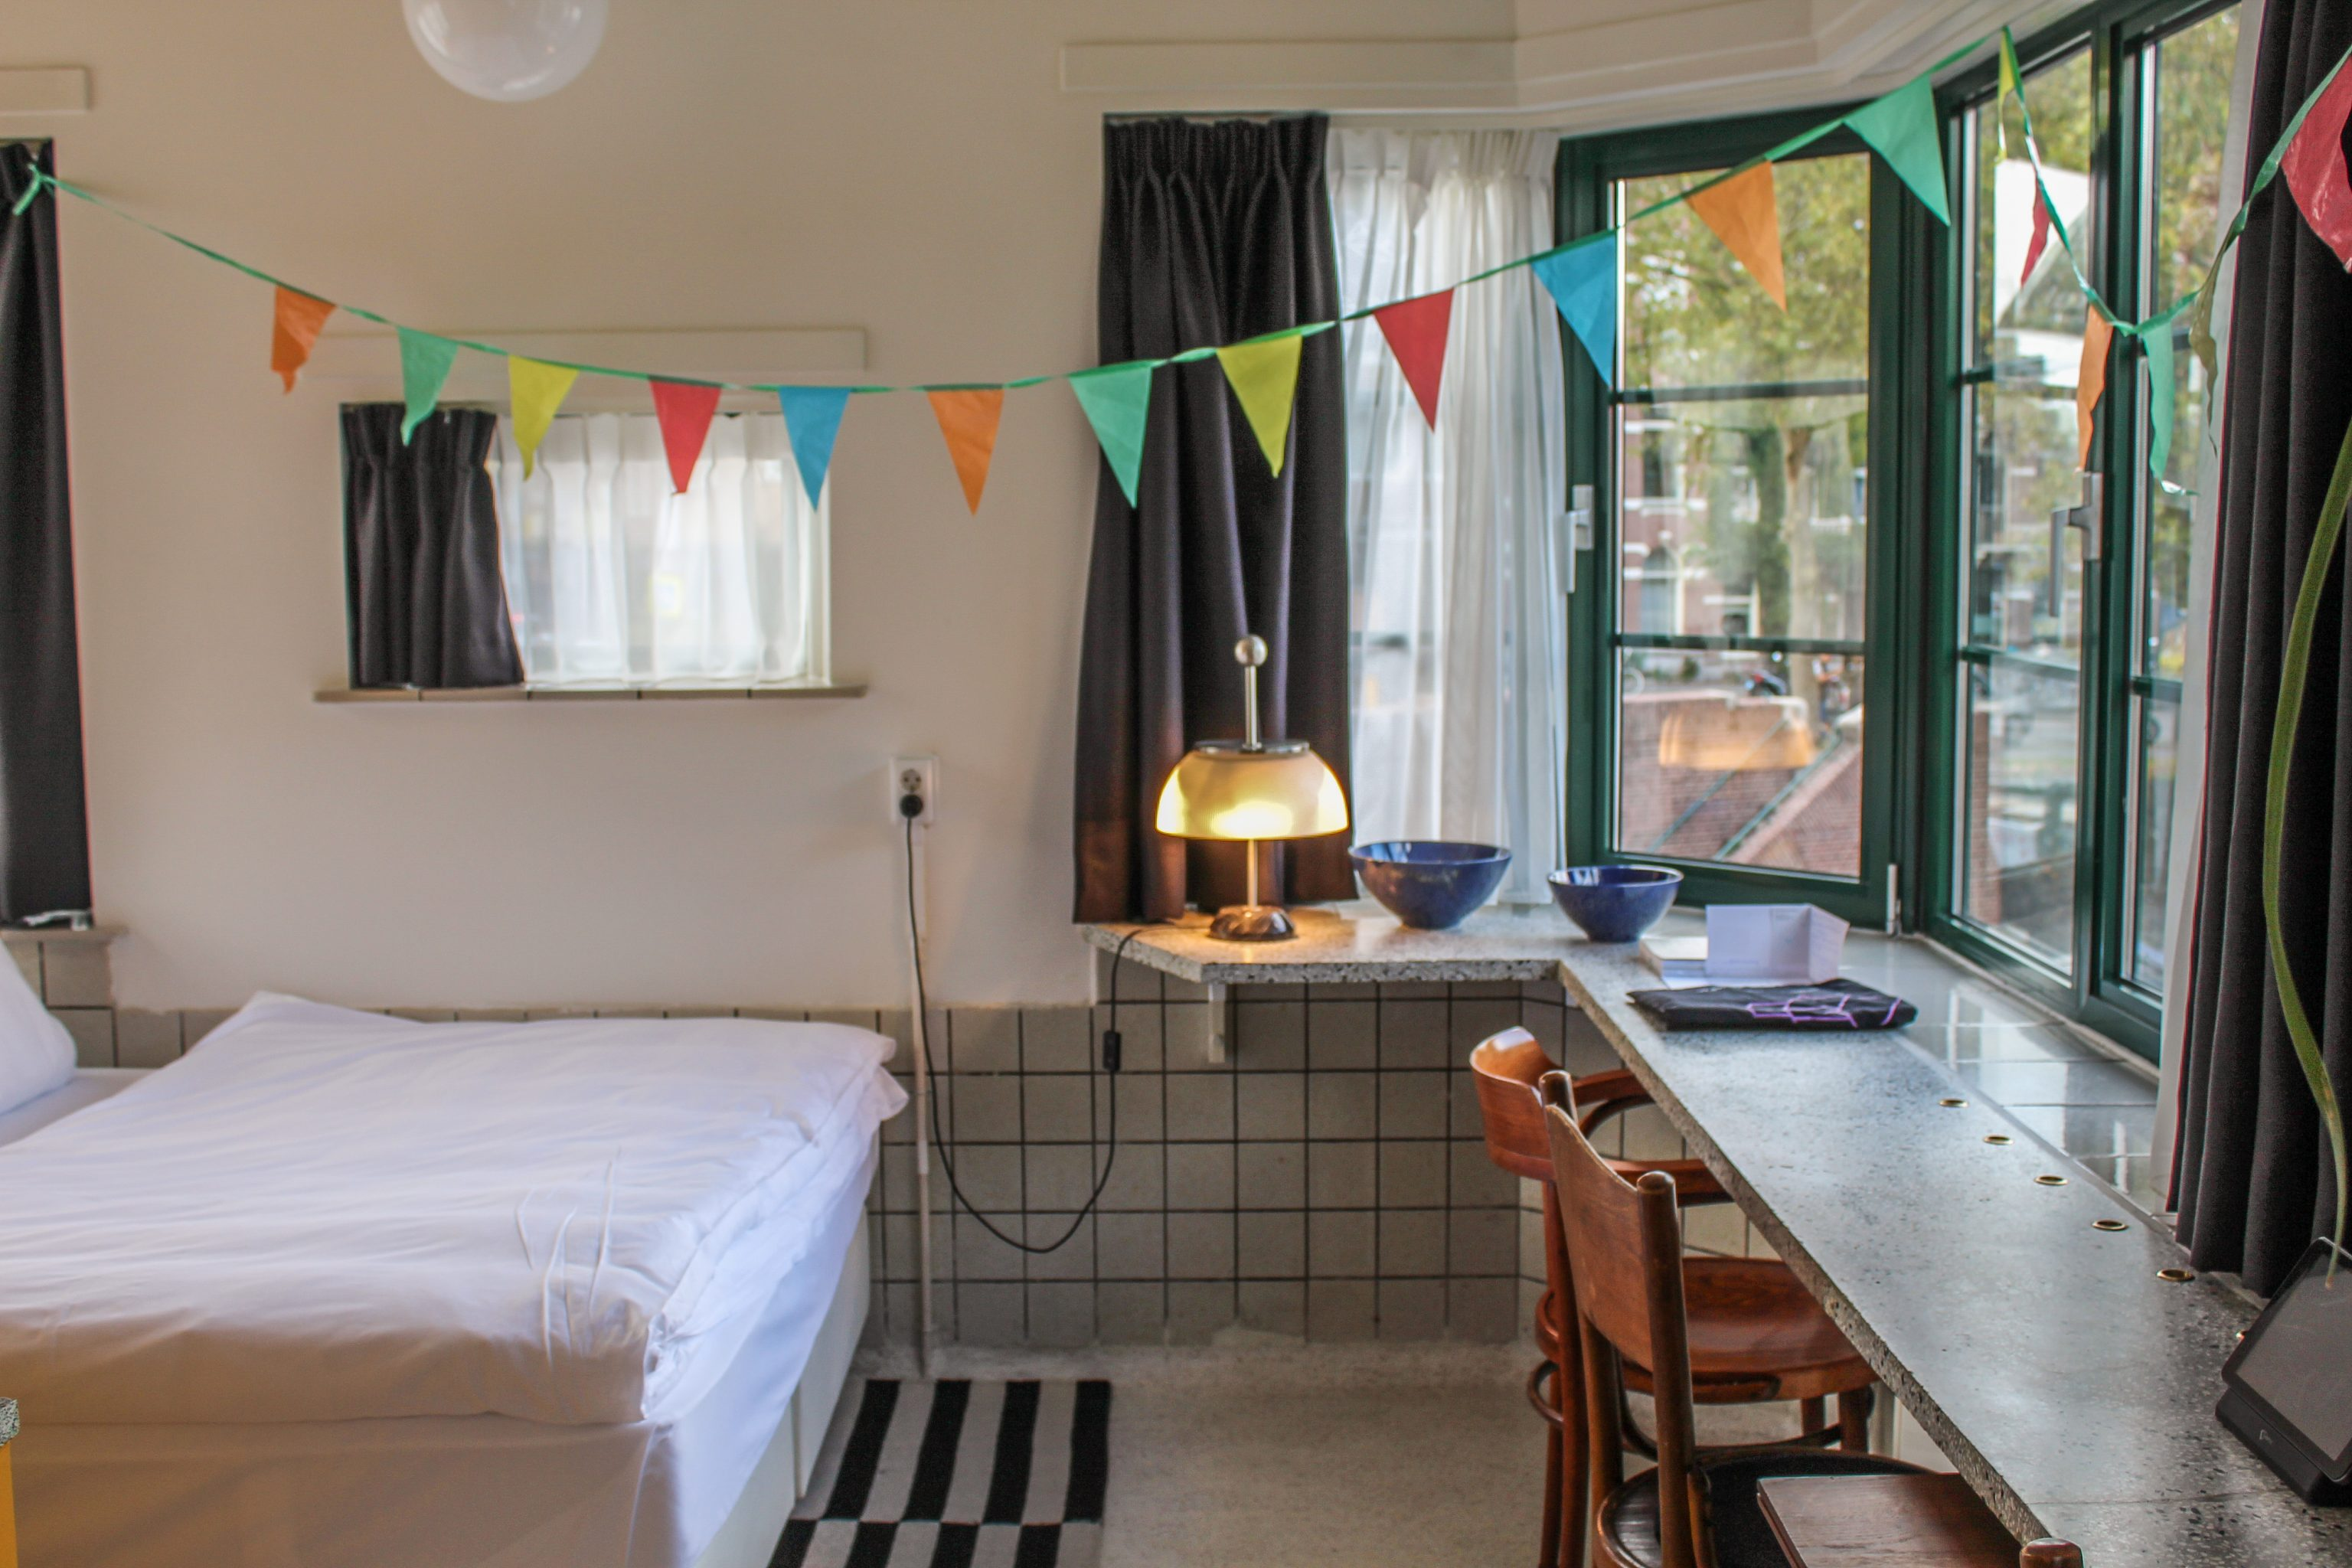 SWEETS hotel Amsterdam brohus centralt hotel i Amsterdam